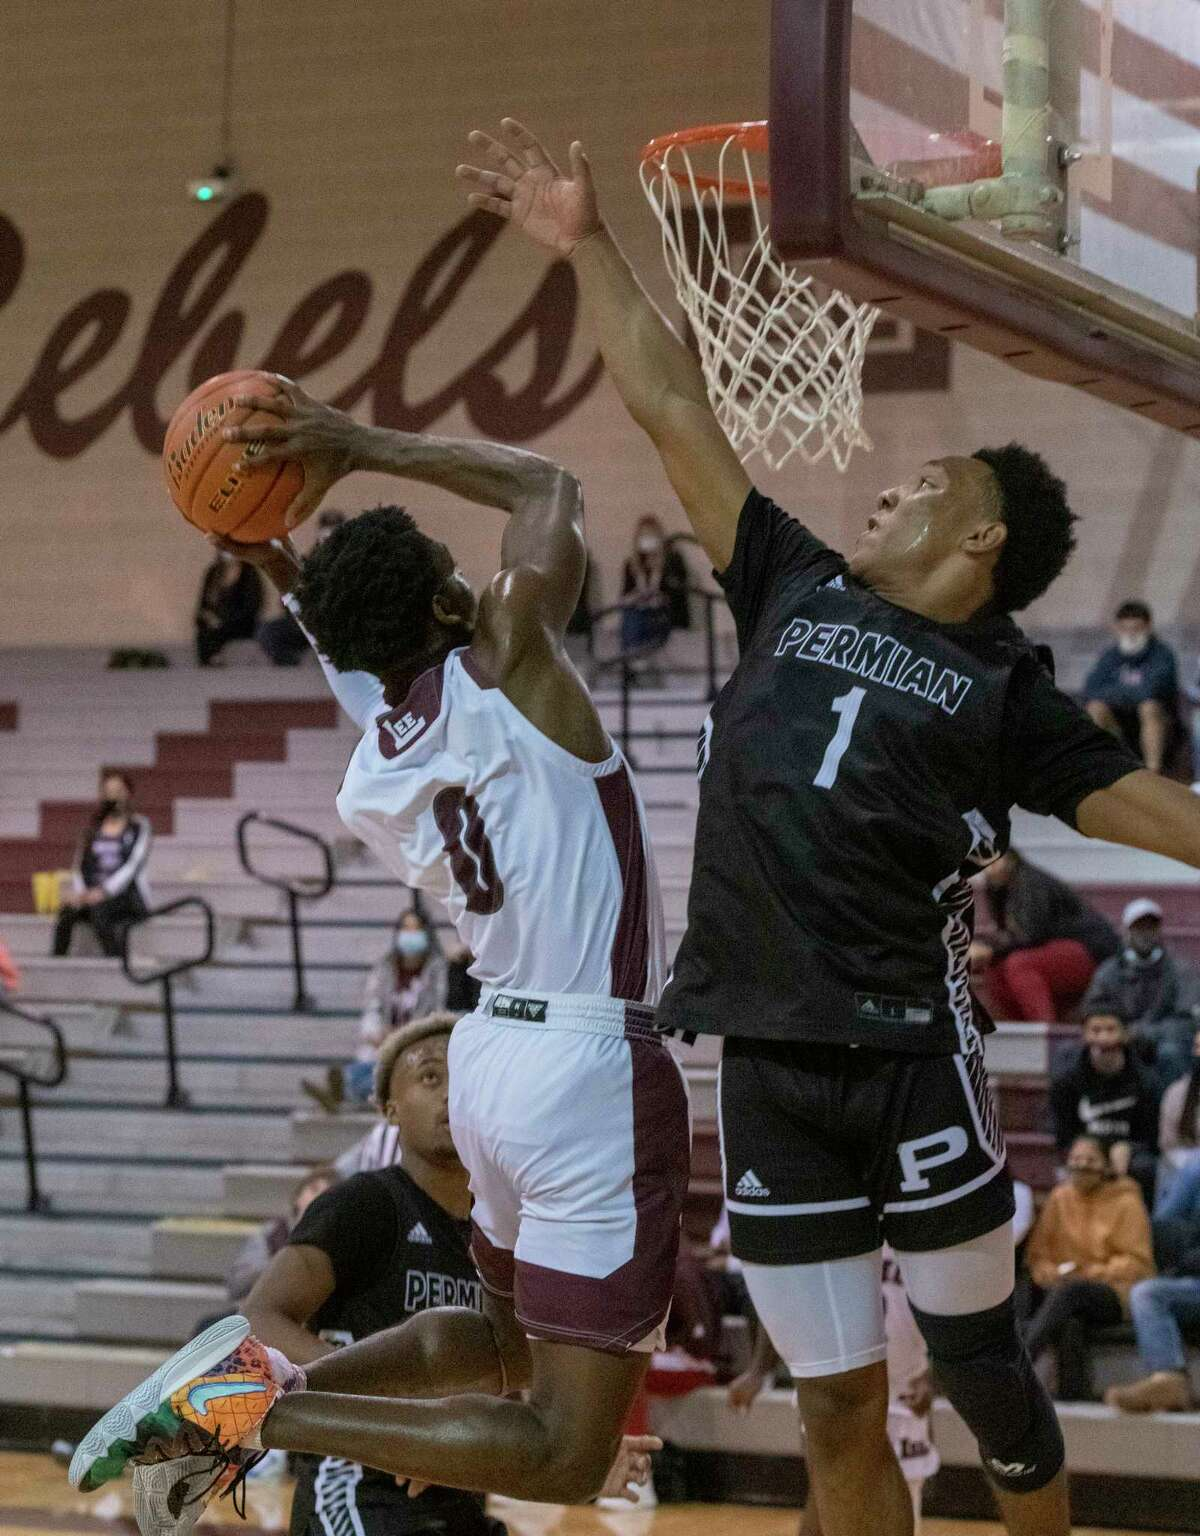 Lee High's Tre Hubert goes up for a shot as Permian's Cedric Baty tries to block 01/12/2021 at the Lee High gym. Tim Fischer/Reporter-Telegram